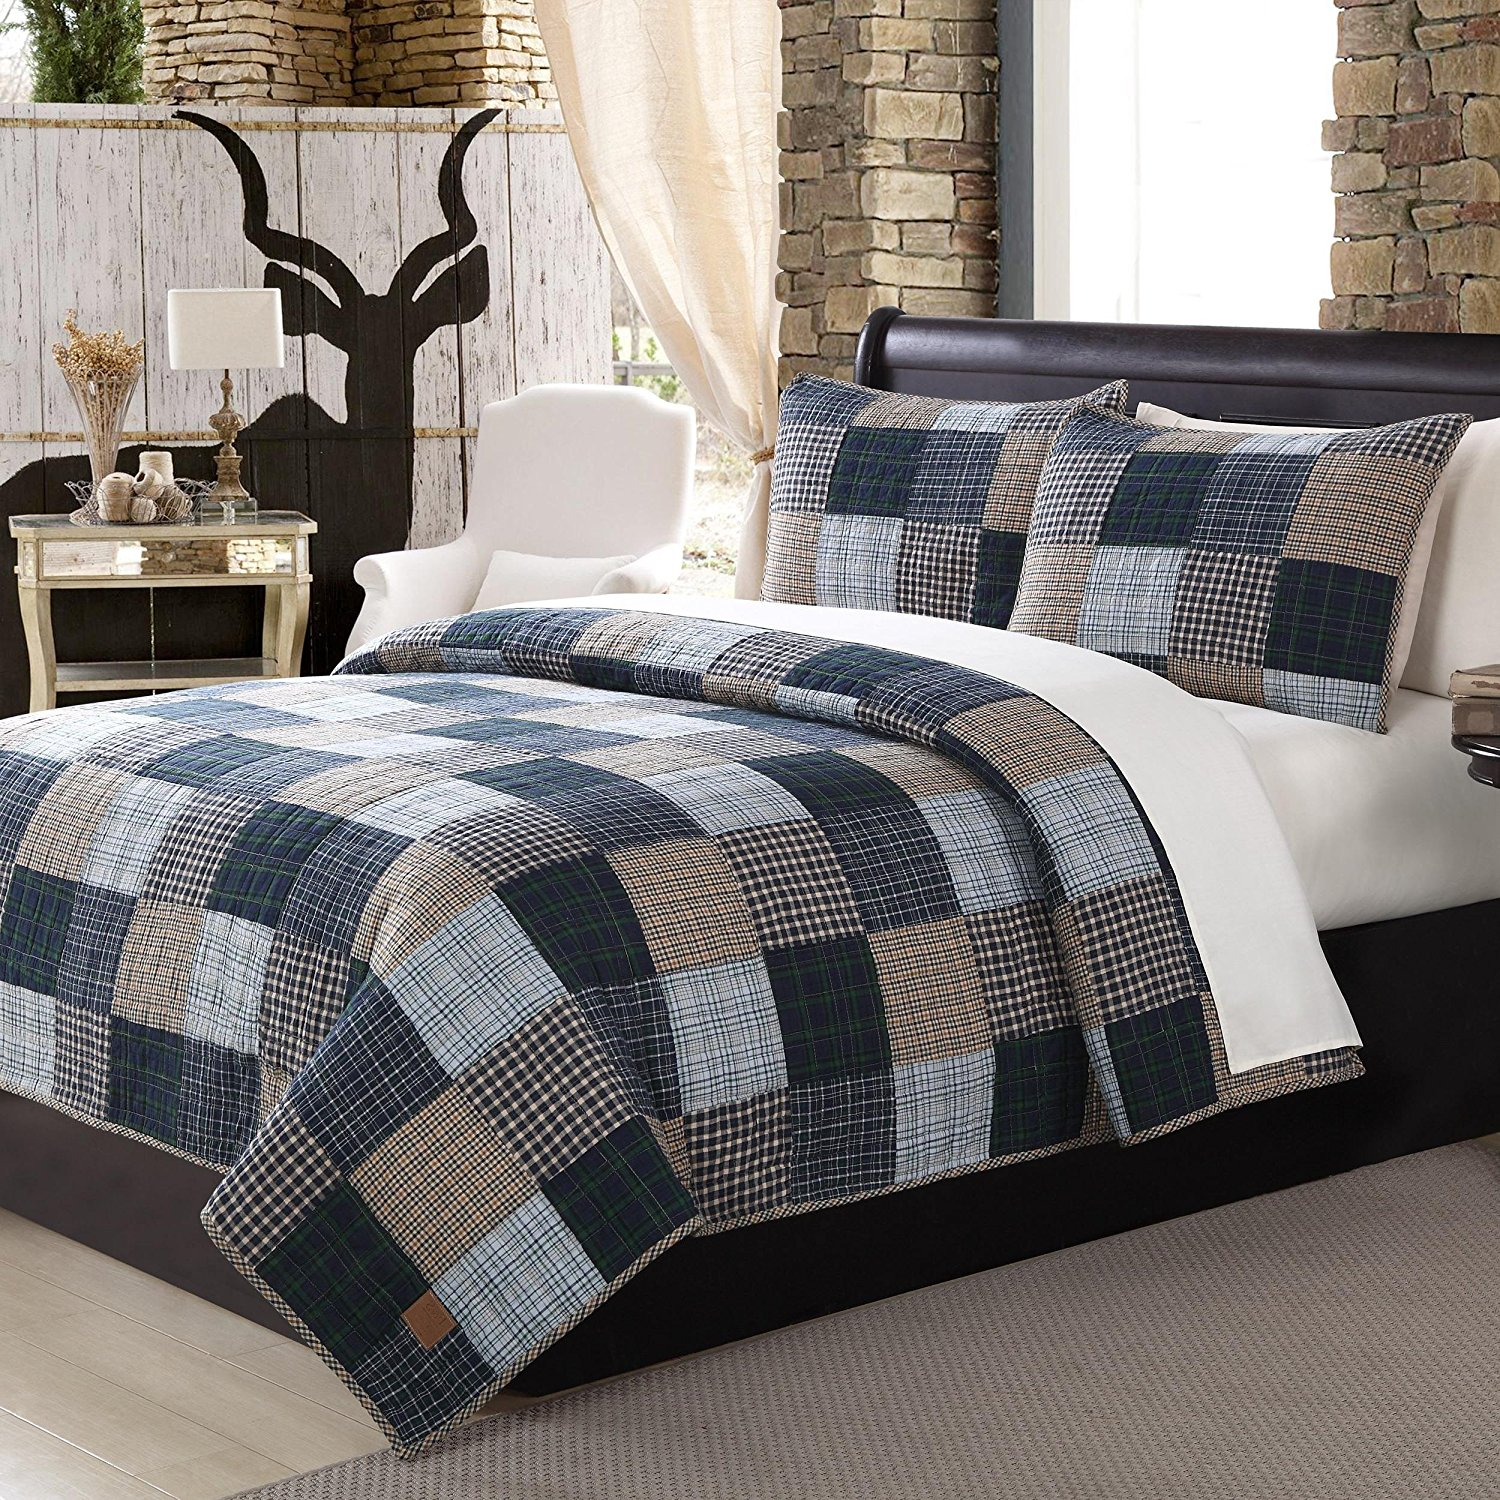 OTS 3 Piece Rustic Light Blue Grey Patchwork King Quilt Set, Navy Plaid Checkered Themed Reversible Bedding Cabin Cottage Blocks Classic Cozy Brown Cream Tan Country Traditional, Cotton, Polyester